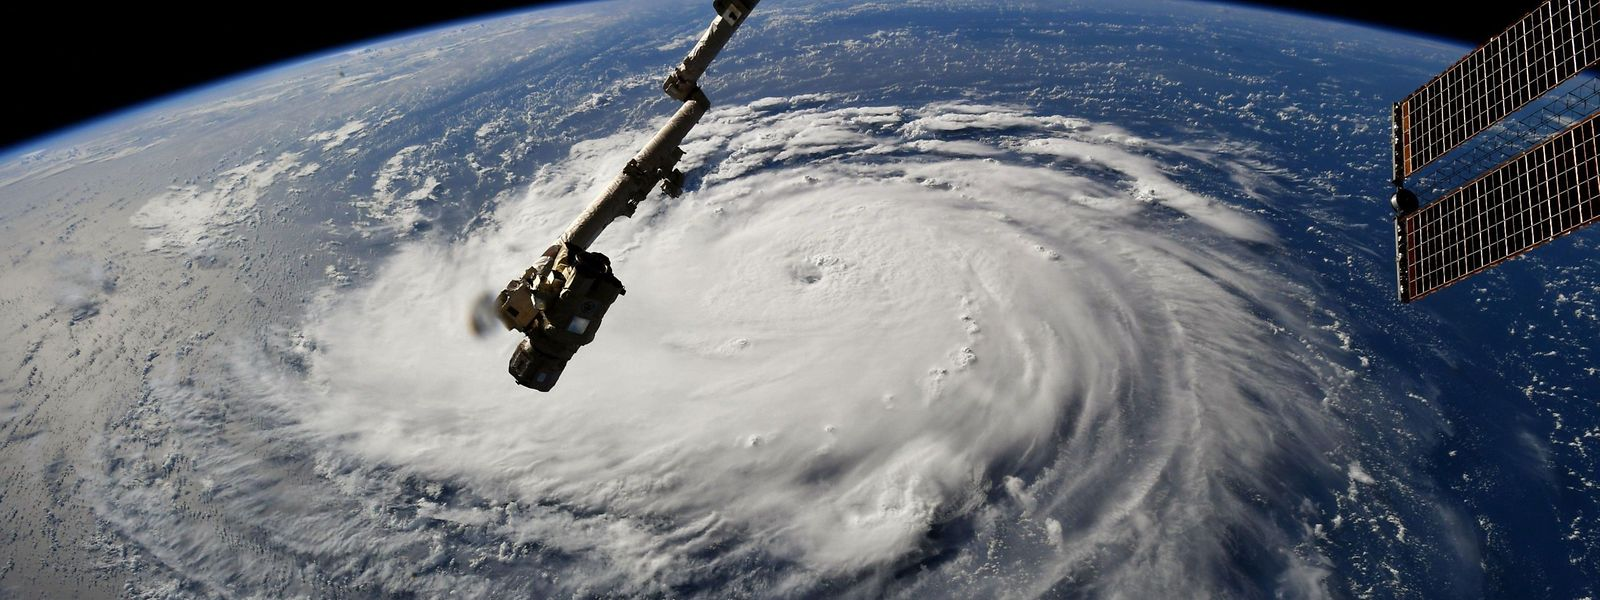 L'ouragan Florence vu depuis la Station spatiale internationale